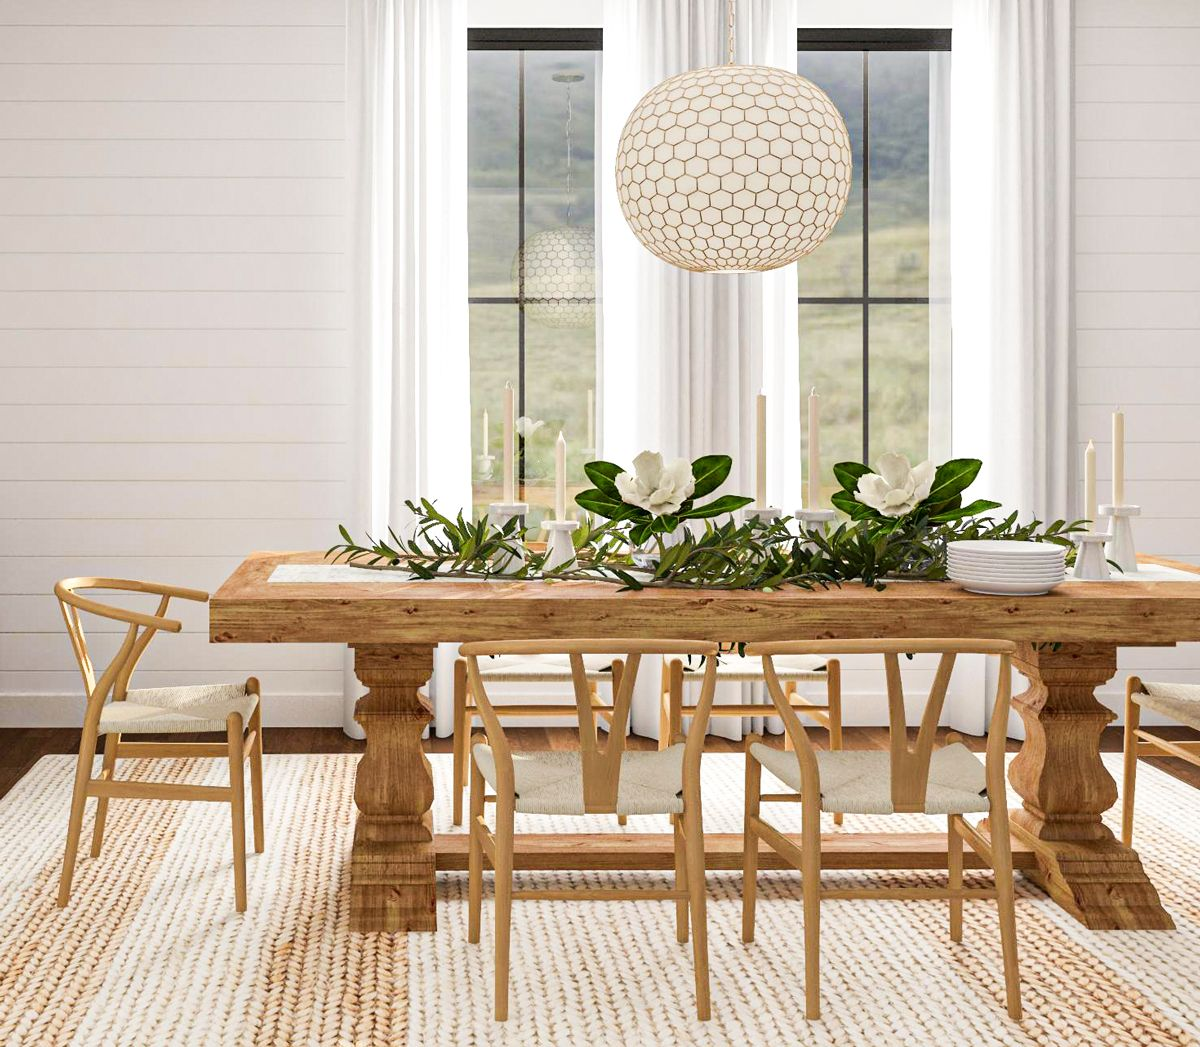 5 Dining Room Design Ideas That Are Ready For Spring In 2020 Mid Century Dining Chair Wood Dining Room Design Tressel Dining Table